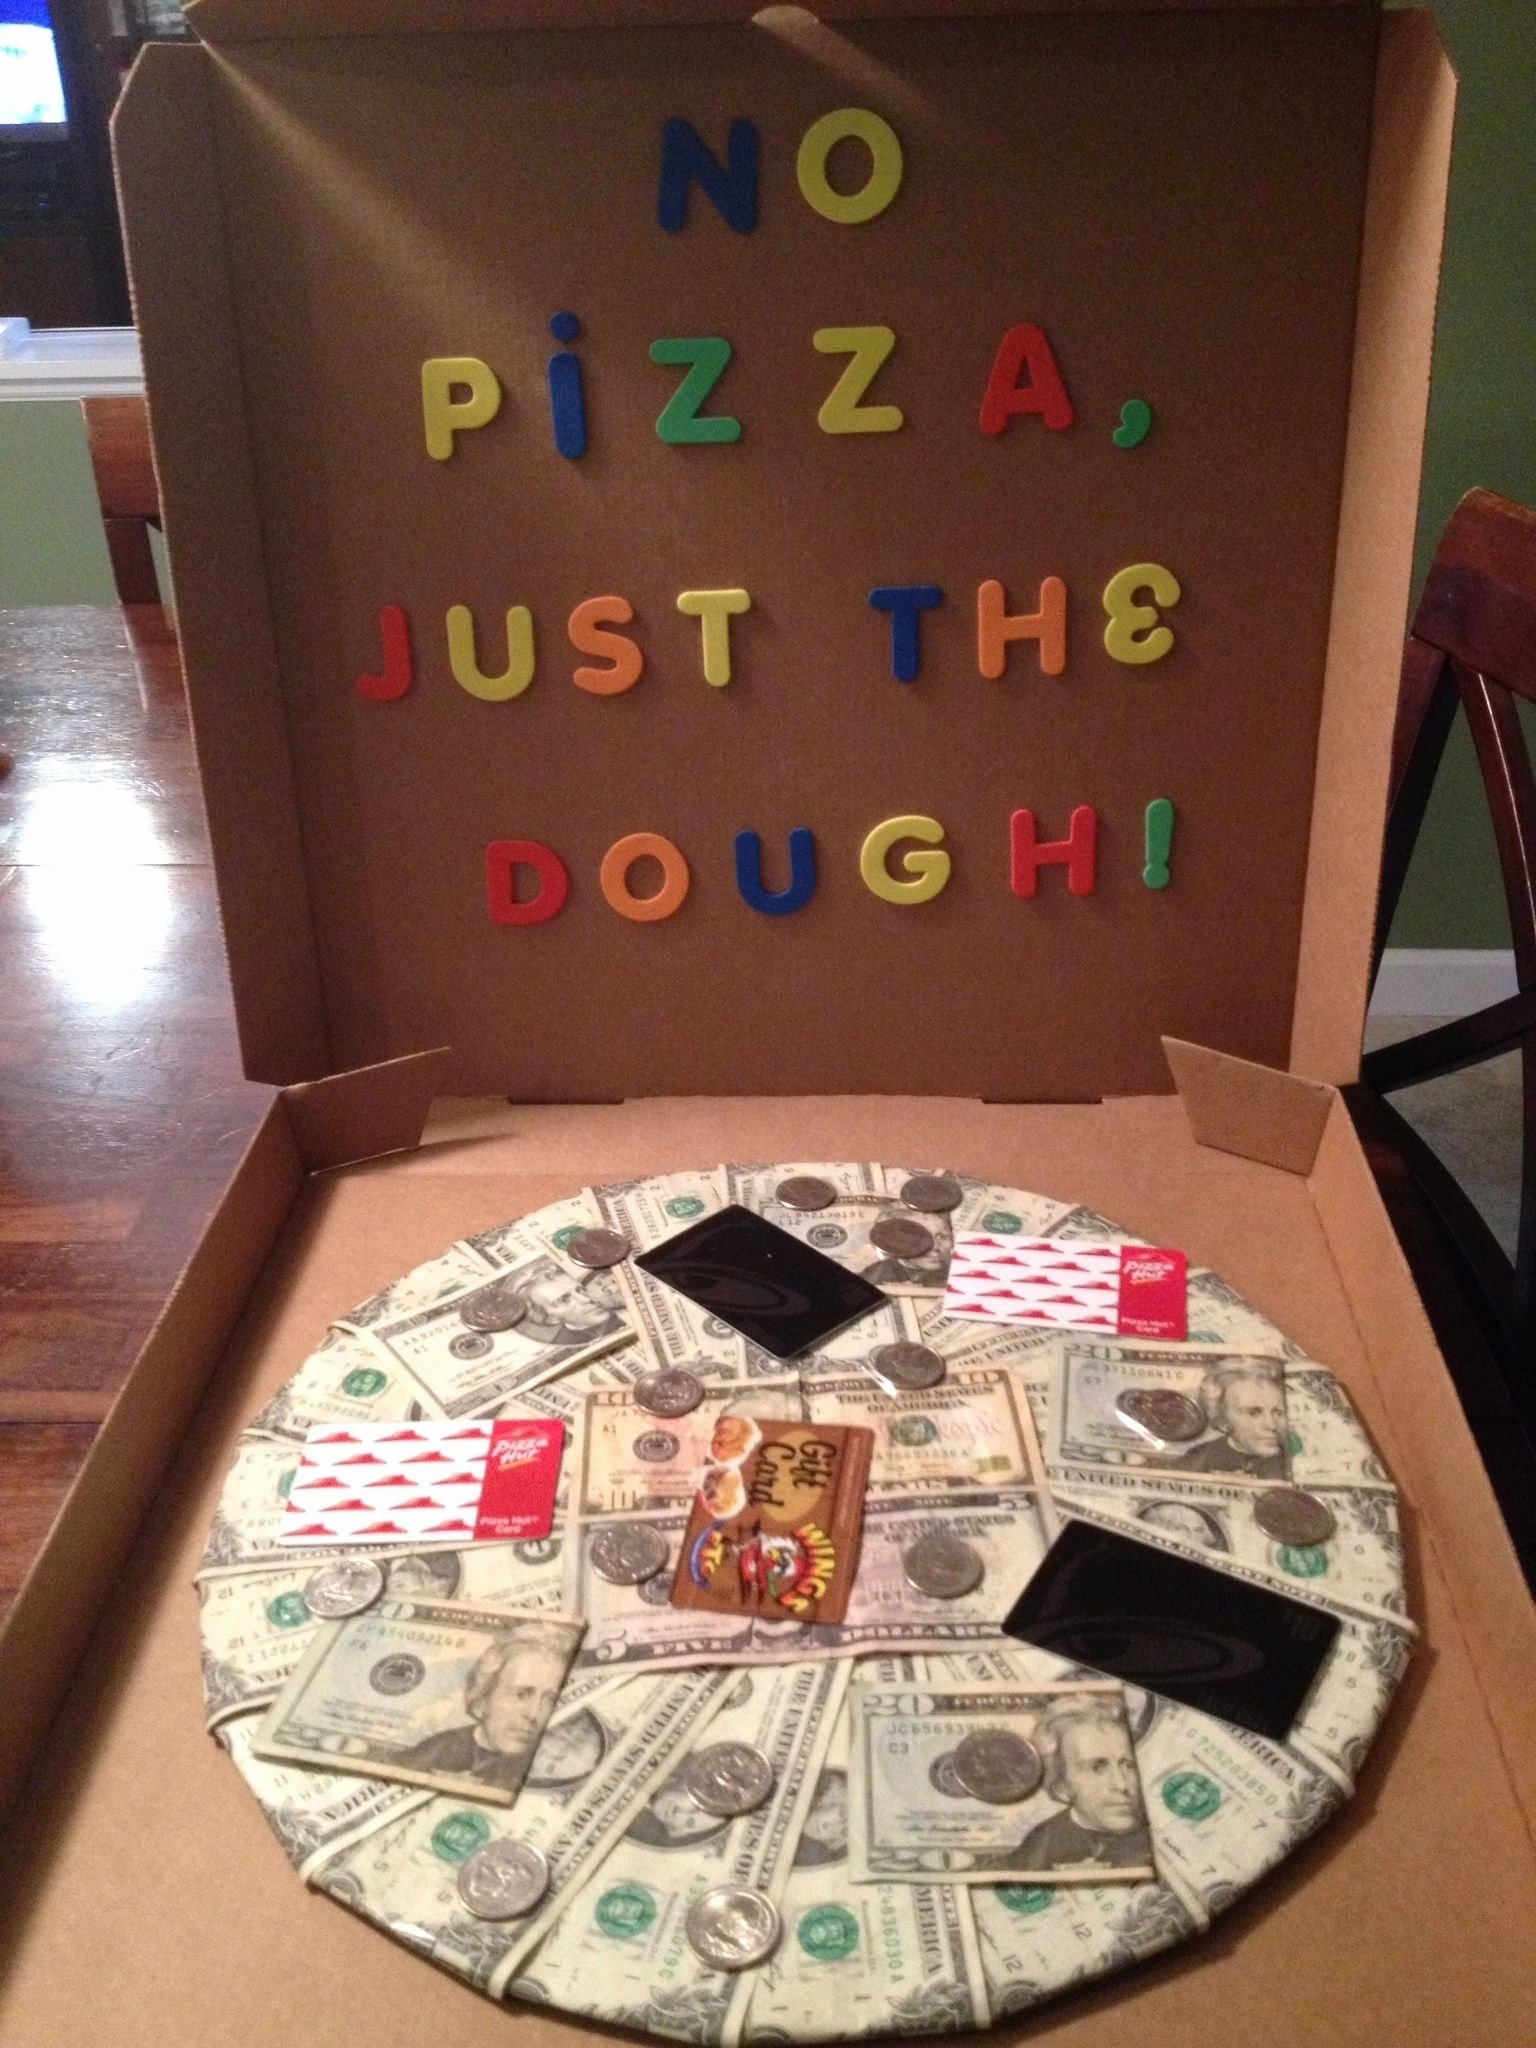 10 Wonderful Gift Card Ideas For Men birthday gift card ideas for him new no pizza just the dough made 2021